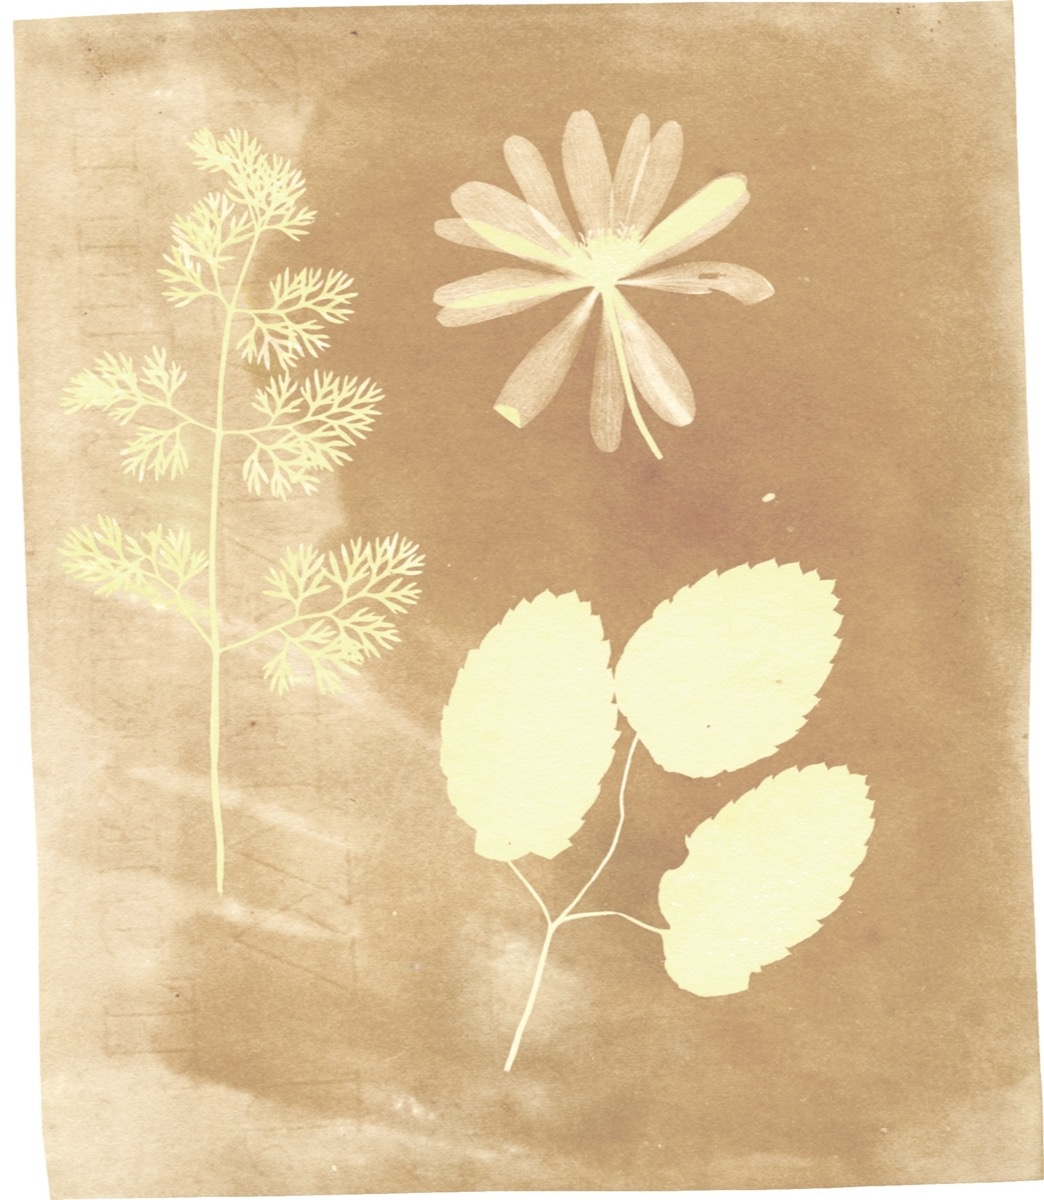 Original print by William Henry Fox Talbot. Courtesy of National Media Museum.